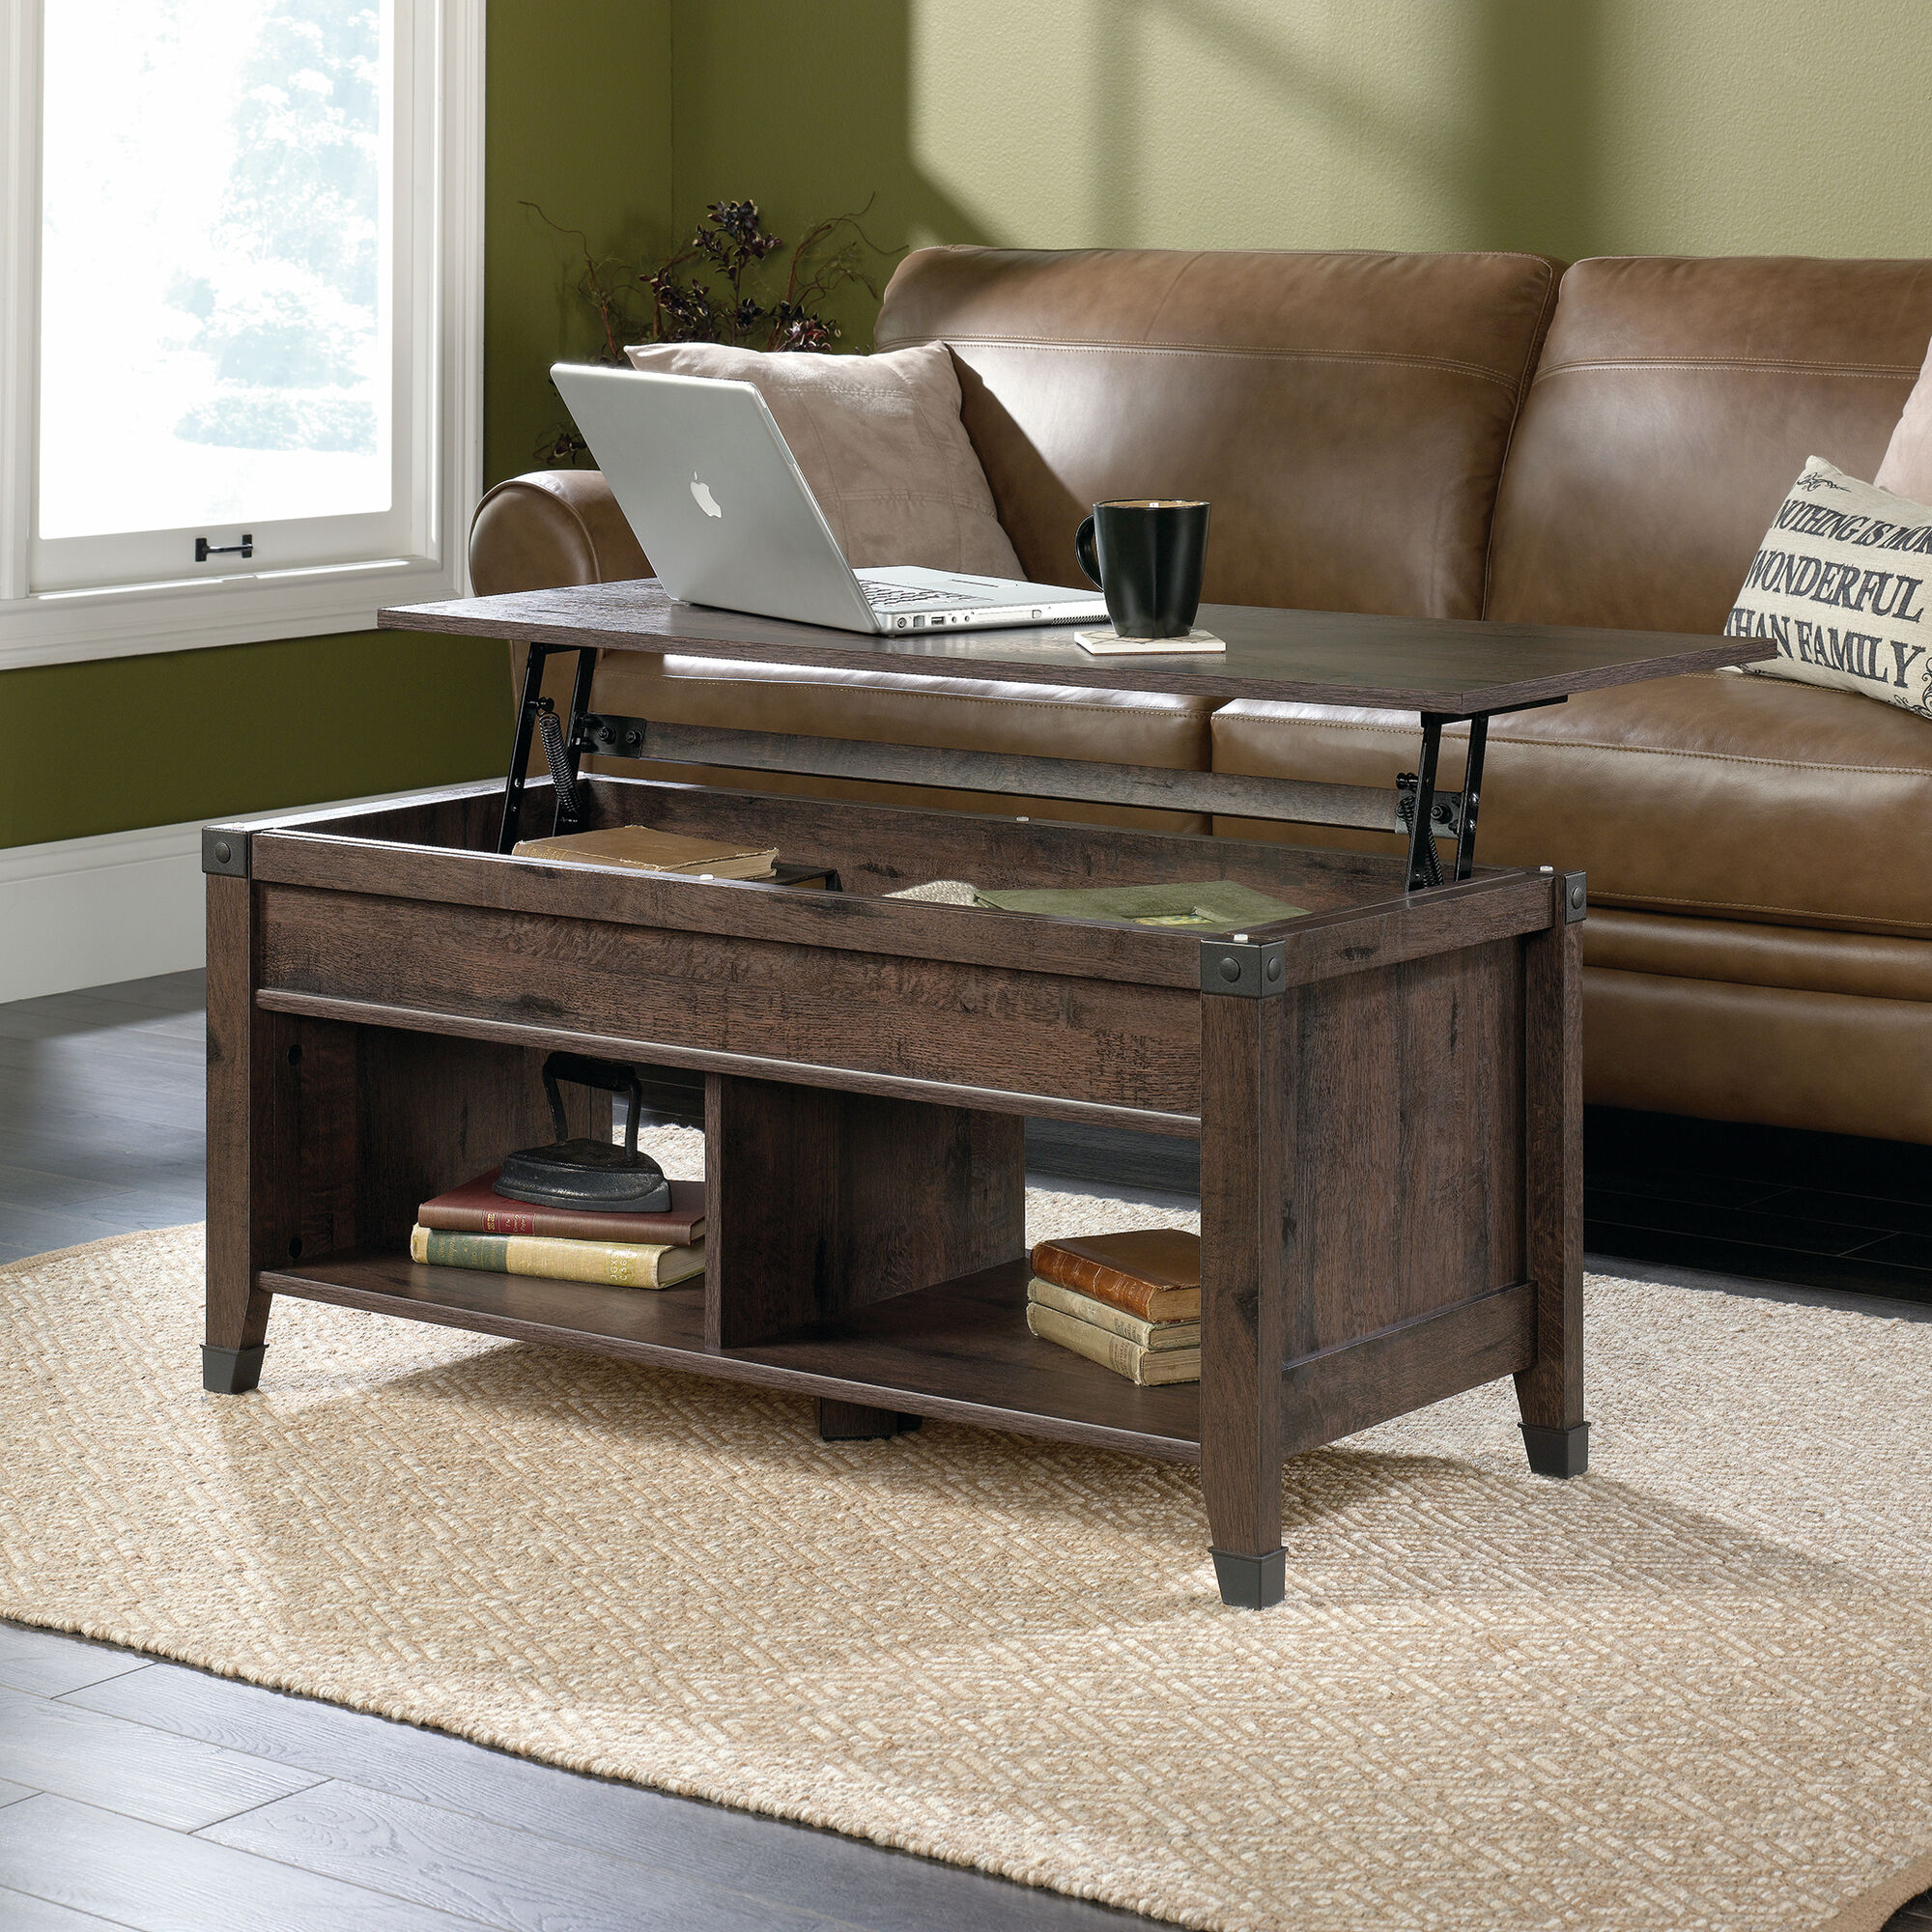 Rectangular lift top contemporary coffee table in coffee